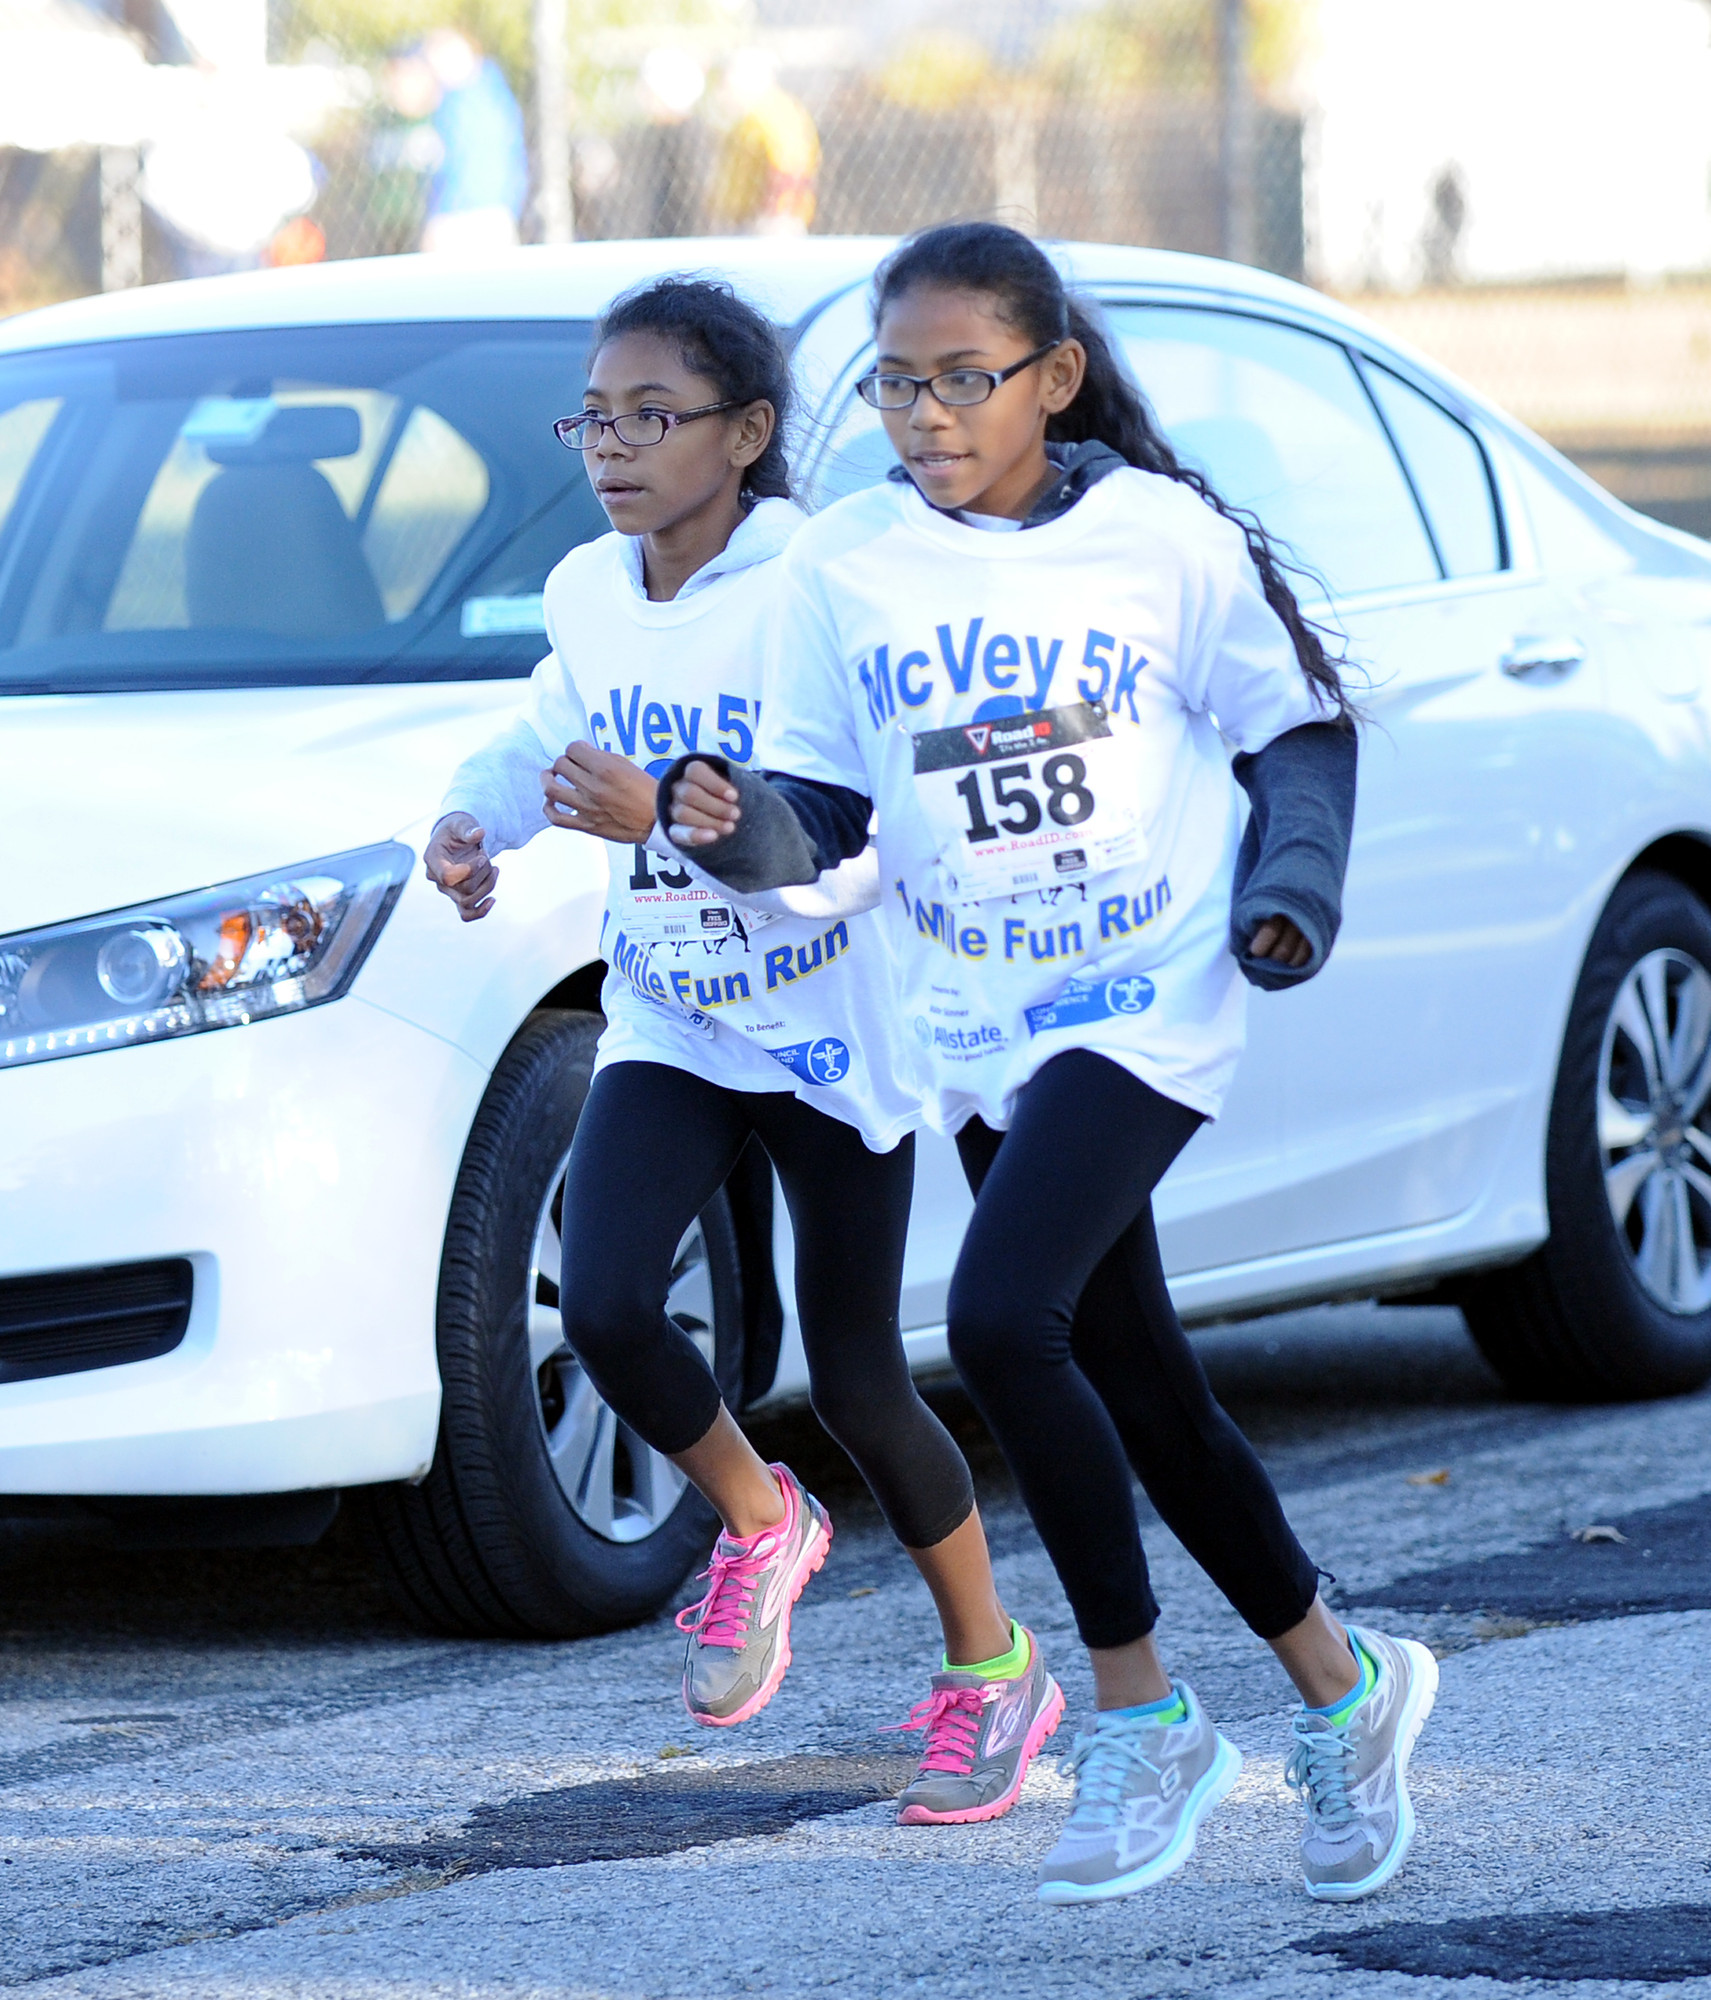 12-year-old twin sisters Isabel and Katherine Marsh ran the entire 5K race side by side.